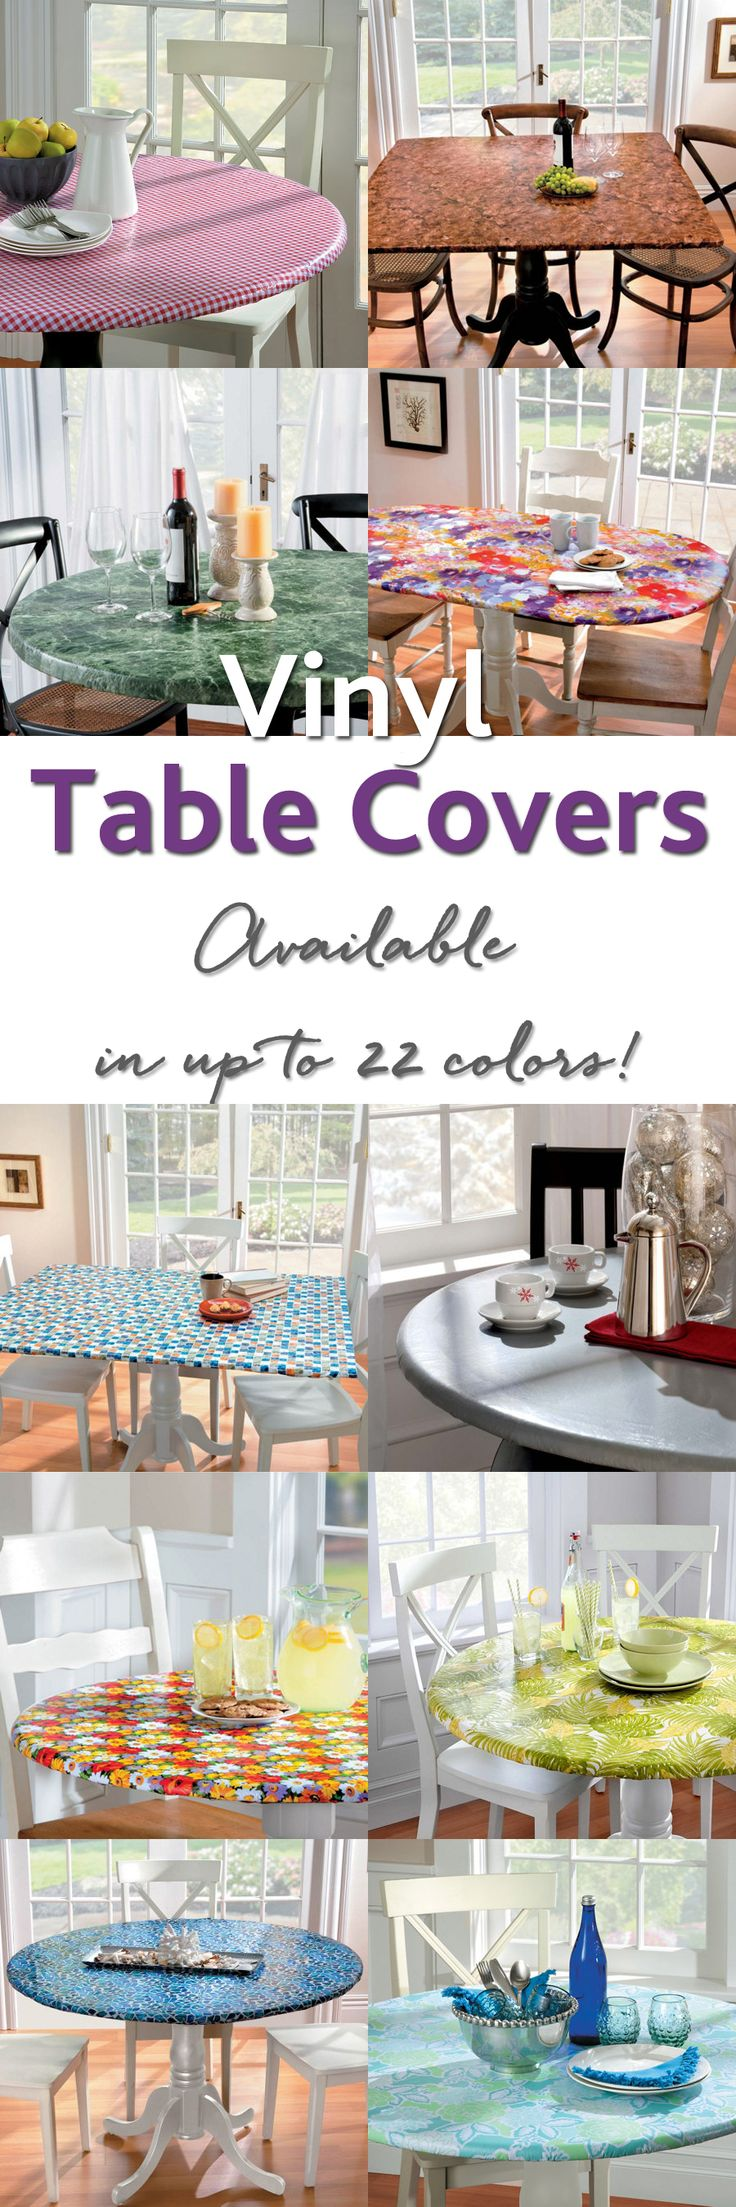 Add beauty and protection to your tables with our top-quality elasticized Vinyl Table Covers. Whether you want to protect a new table or give an old table a fresh new look, these fitted tablecloths will do the job beautifully.